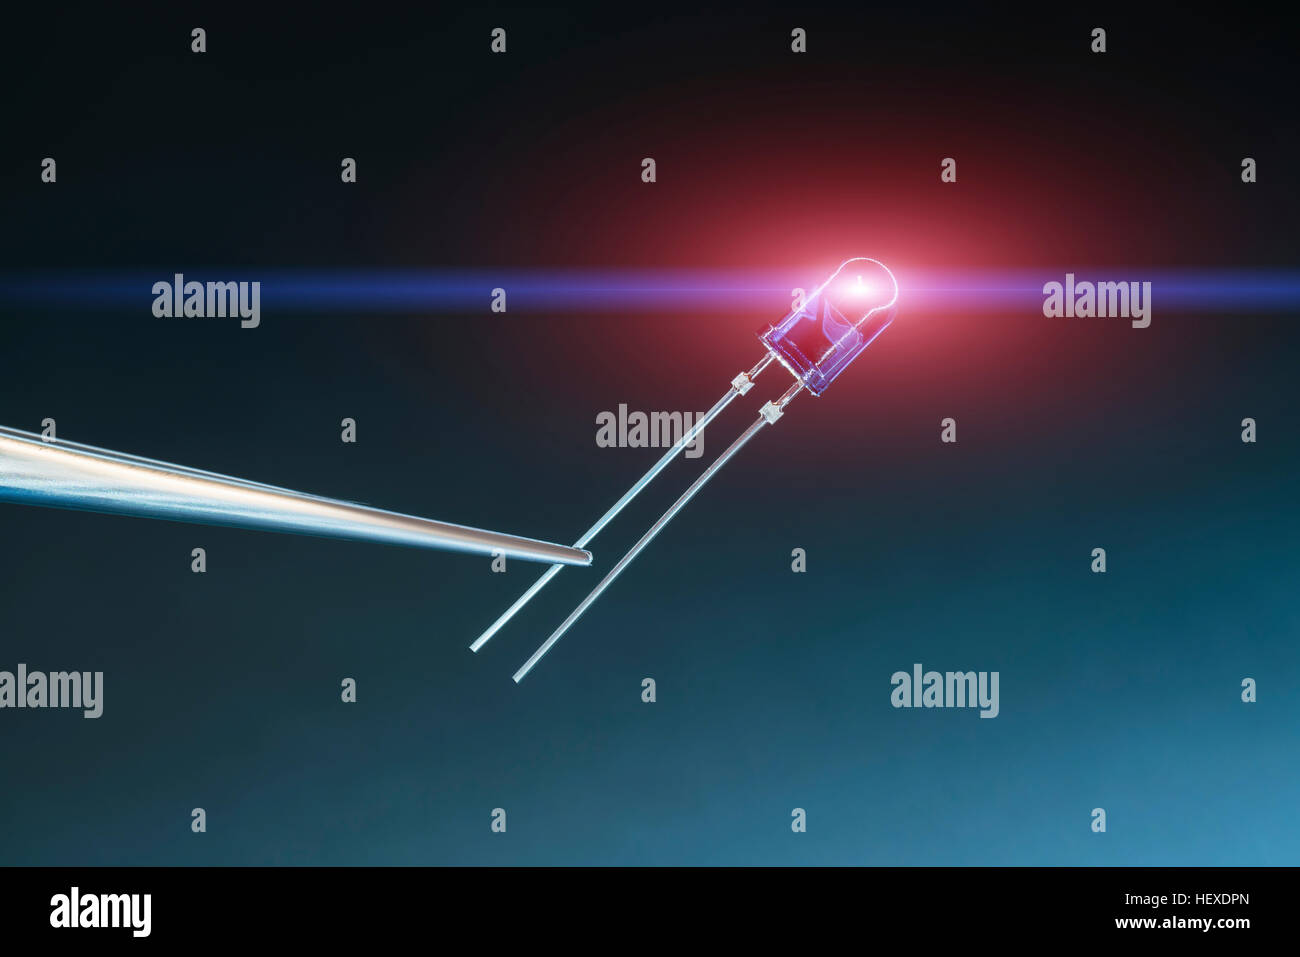 Diode Lighting Diode Stock Photos And Diode Stock Images Alamy